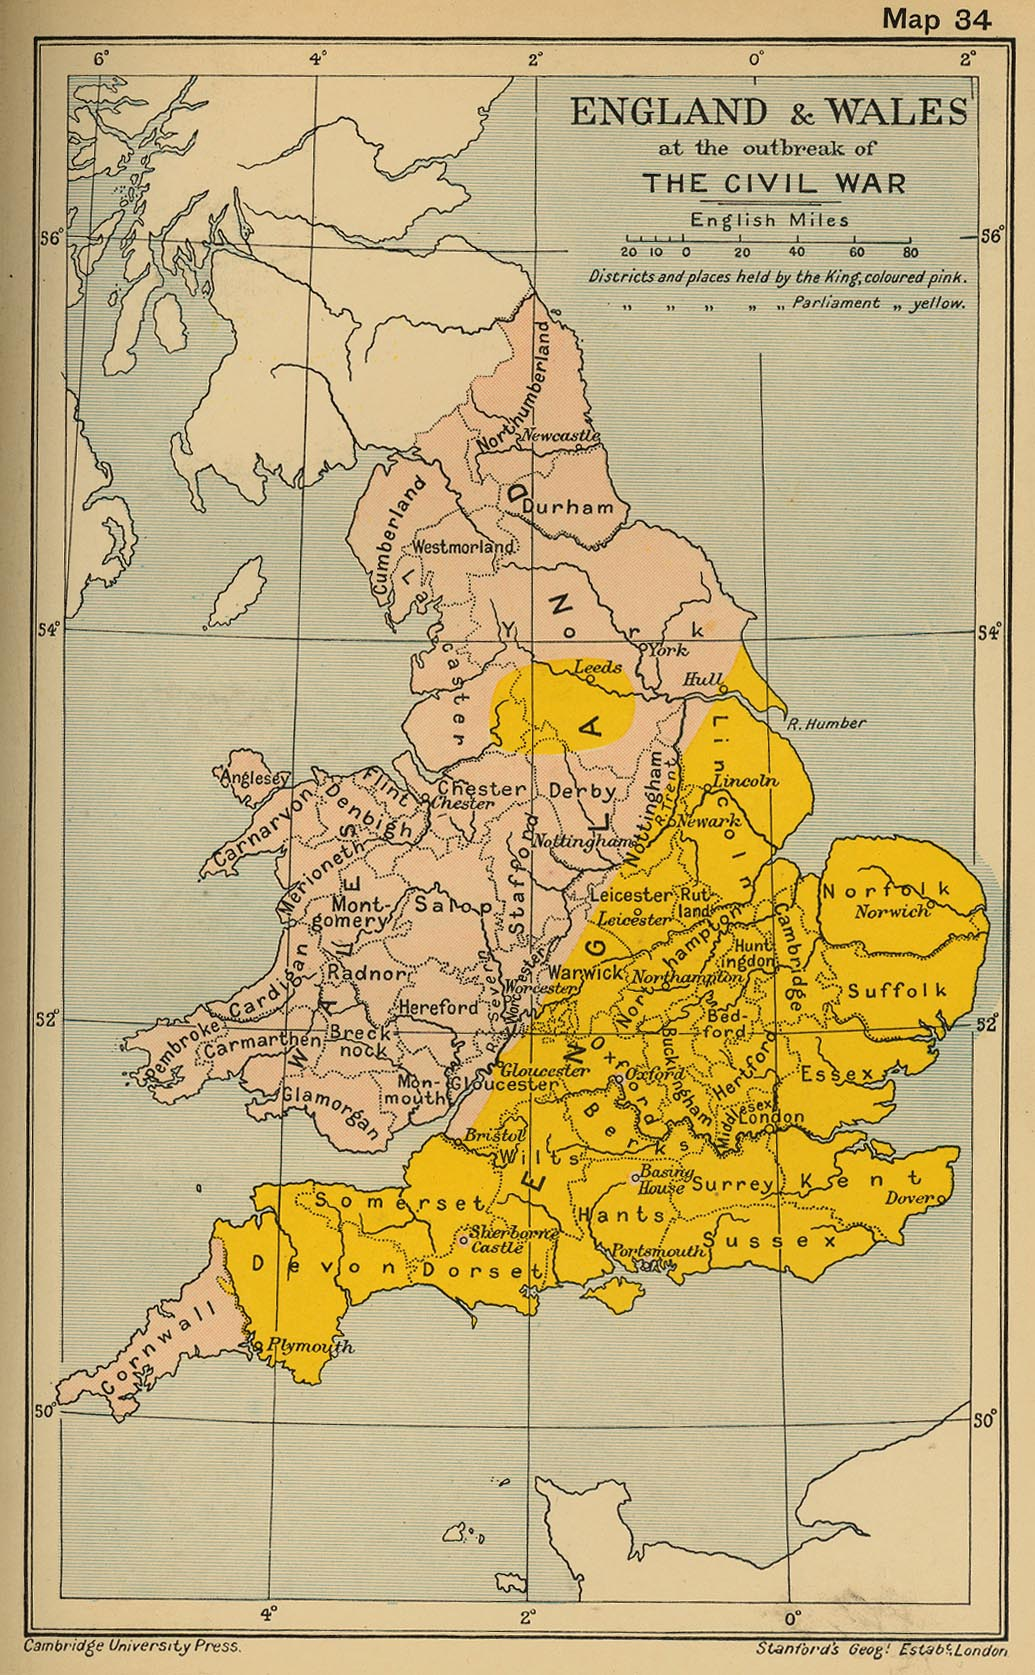 Map of England and Wales at the beginning of the Civil War 1642